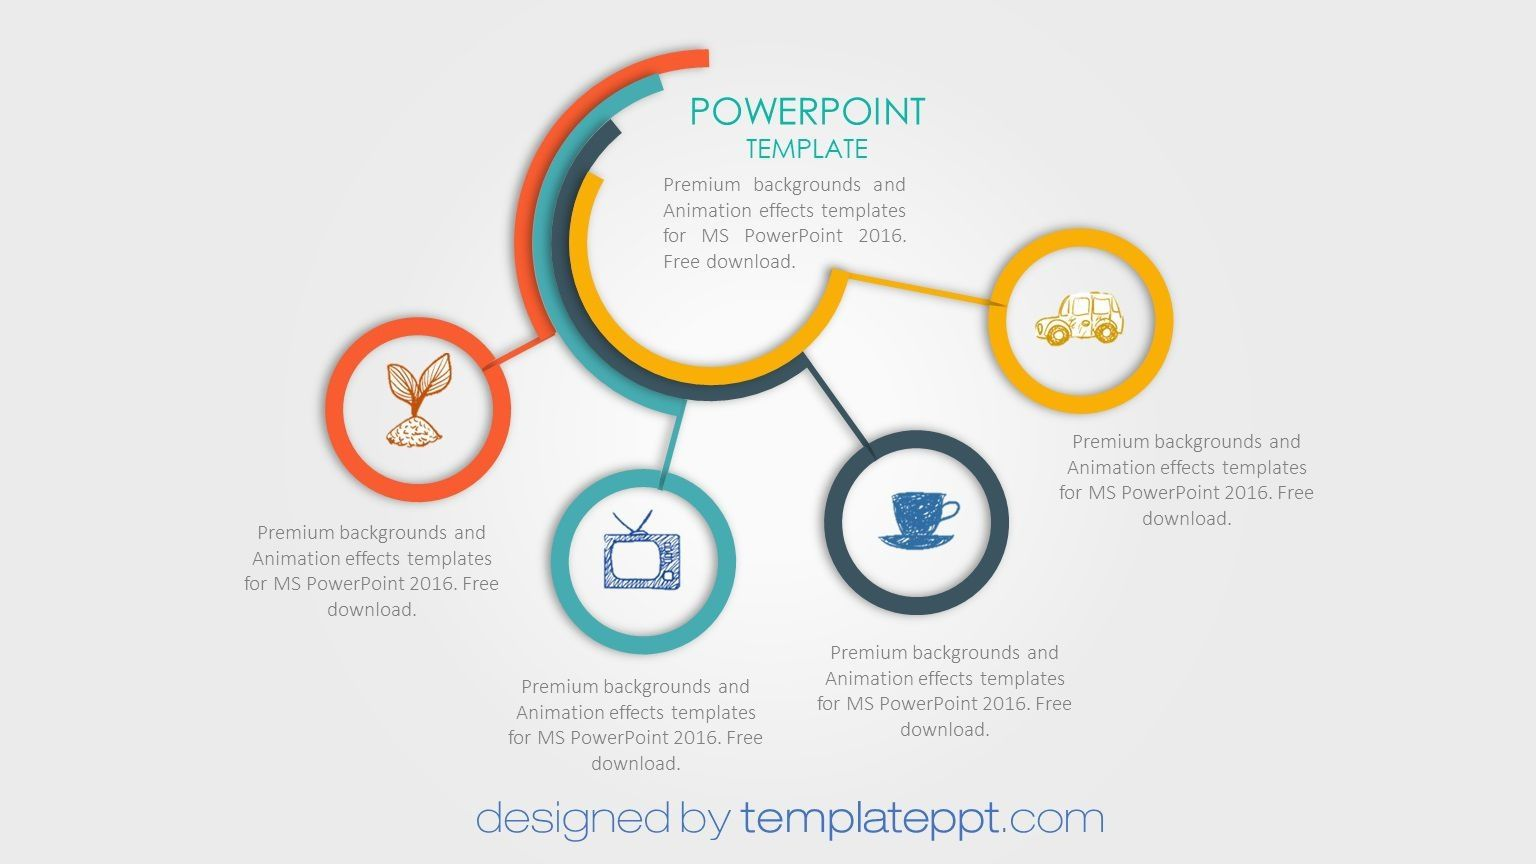 007 Fantastic Animated Powerpoint Template Free Download 2017 Concept  With Animation 3dFull